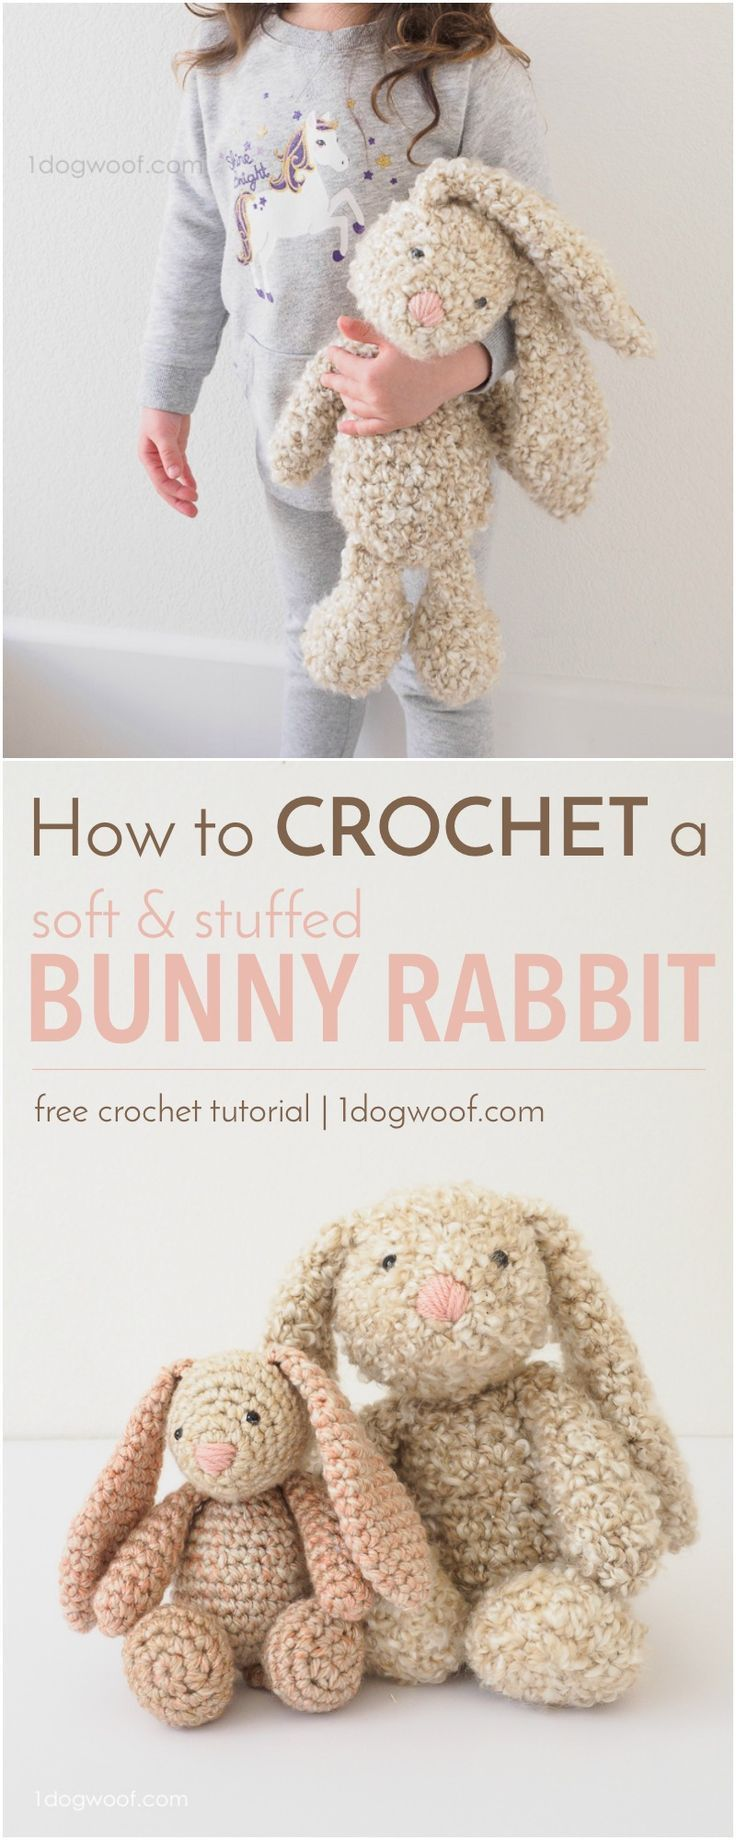 Classic Crochet Bunny Pattern for Easter #eastercrochetpatterns